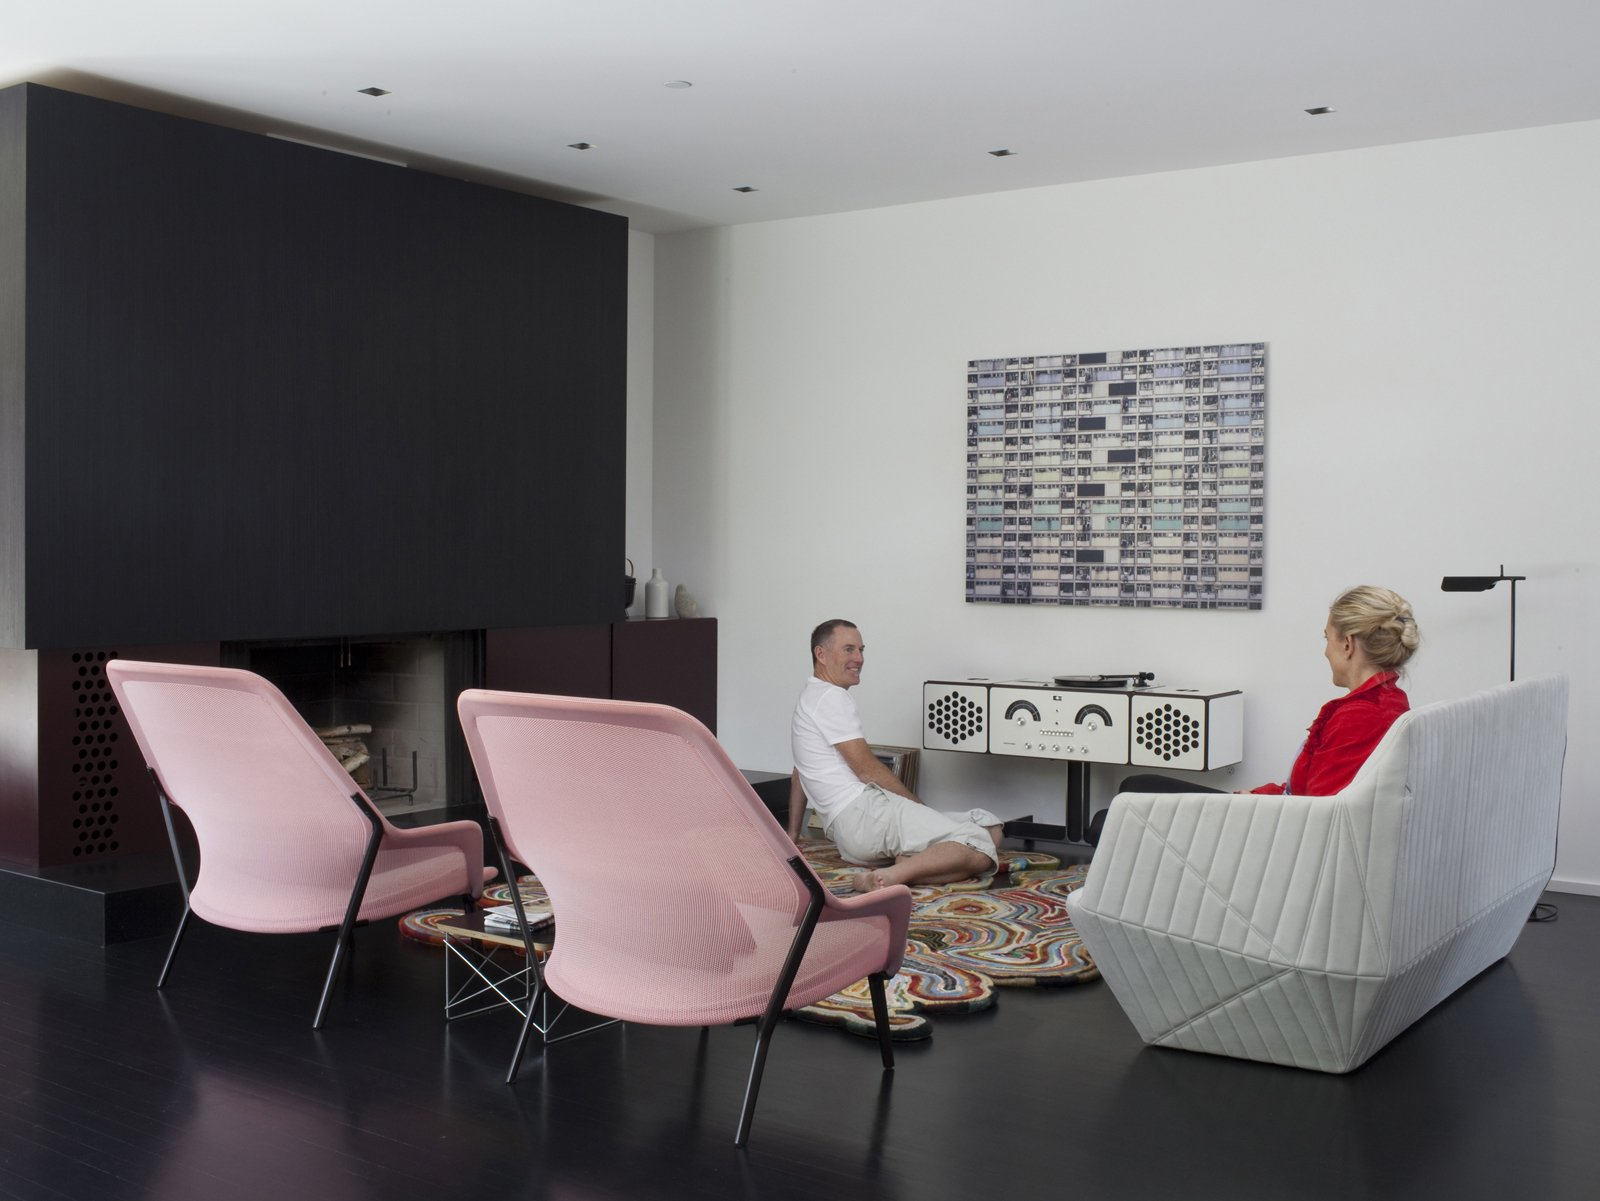 Living Room, End Tables, Rug Floor, Dark Hardwood Floor, Standard Layout Fireplace, Floor Lighting, Chair, Sofa, and Recessed Lighting The living room is home to two Bouroullec Brothers designs: the Facett sofa for Ligne Roset, and the Slow chair for Vitra.  Photo 29 of 33 in Designed In-House